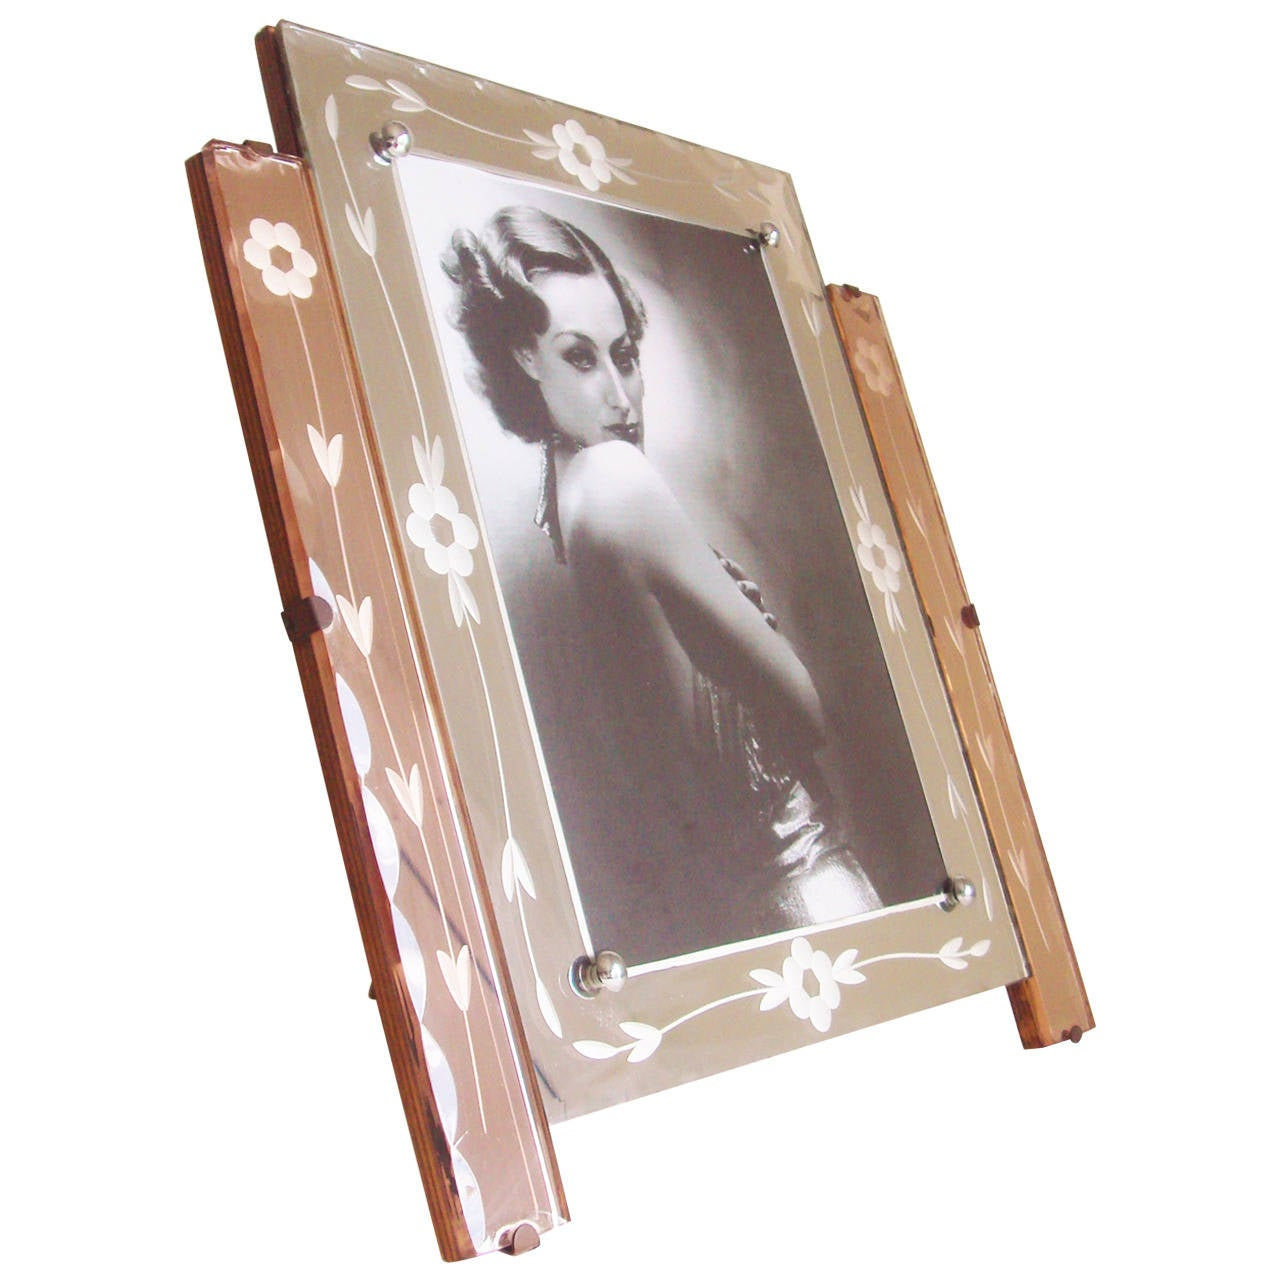 Magnificent English Art Deco Reverse-Etched Amethyst & White Mirror Table Frame